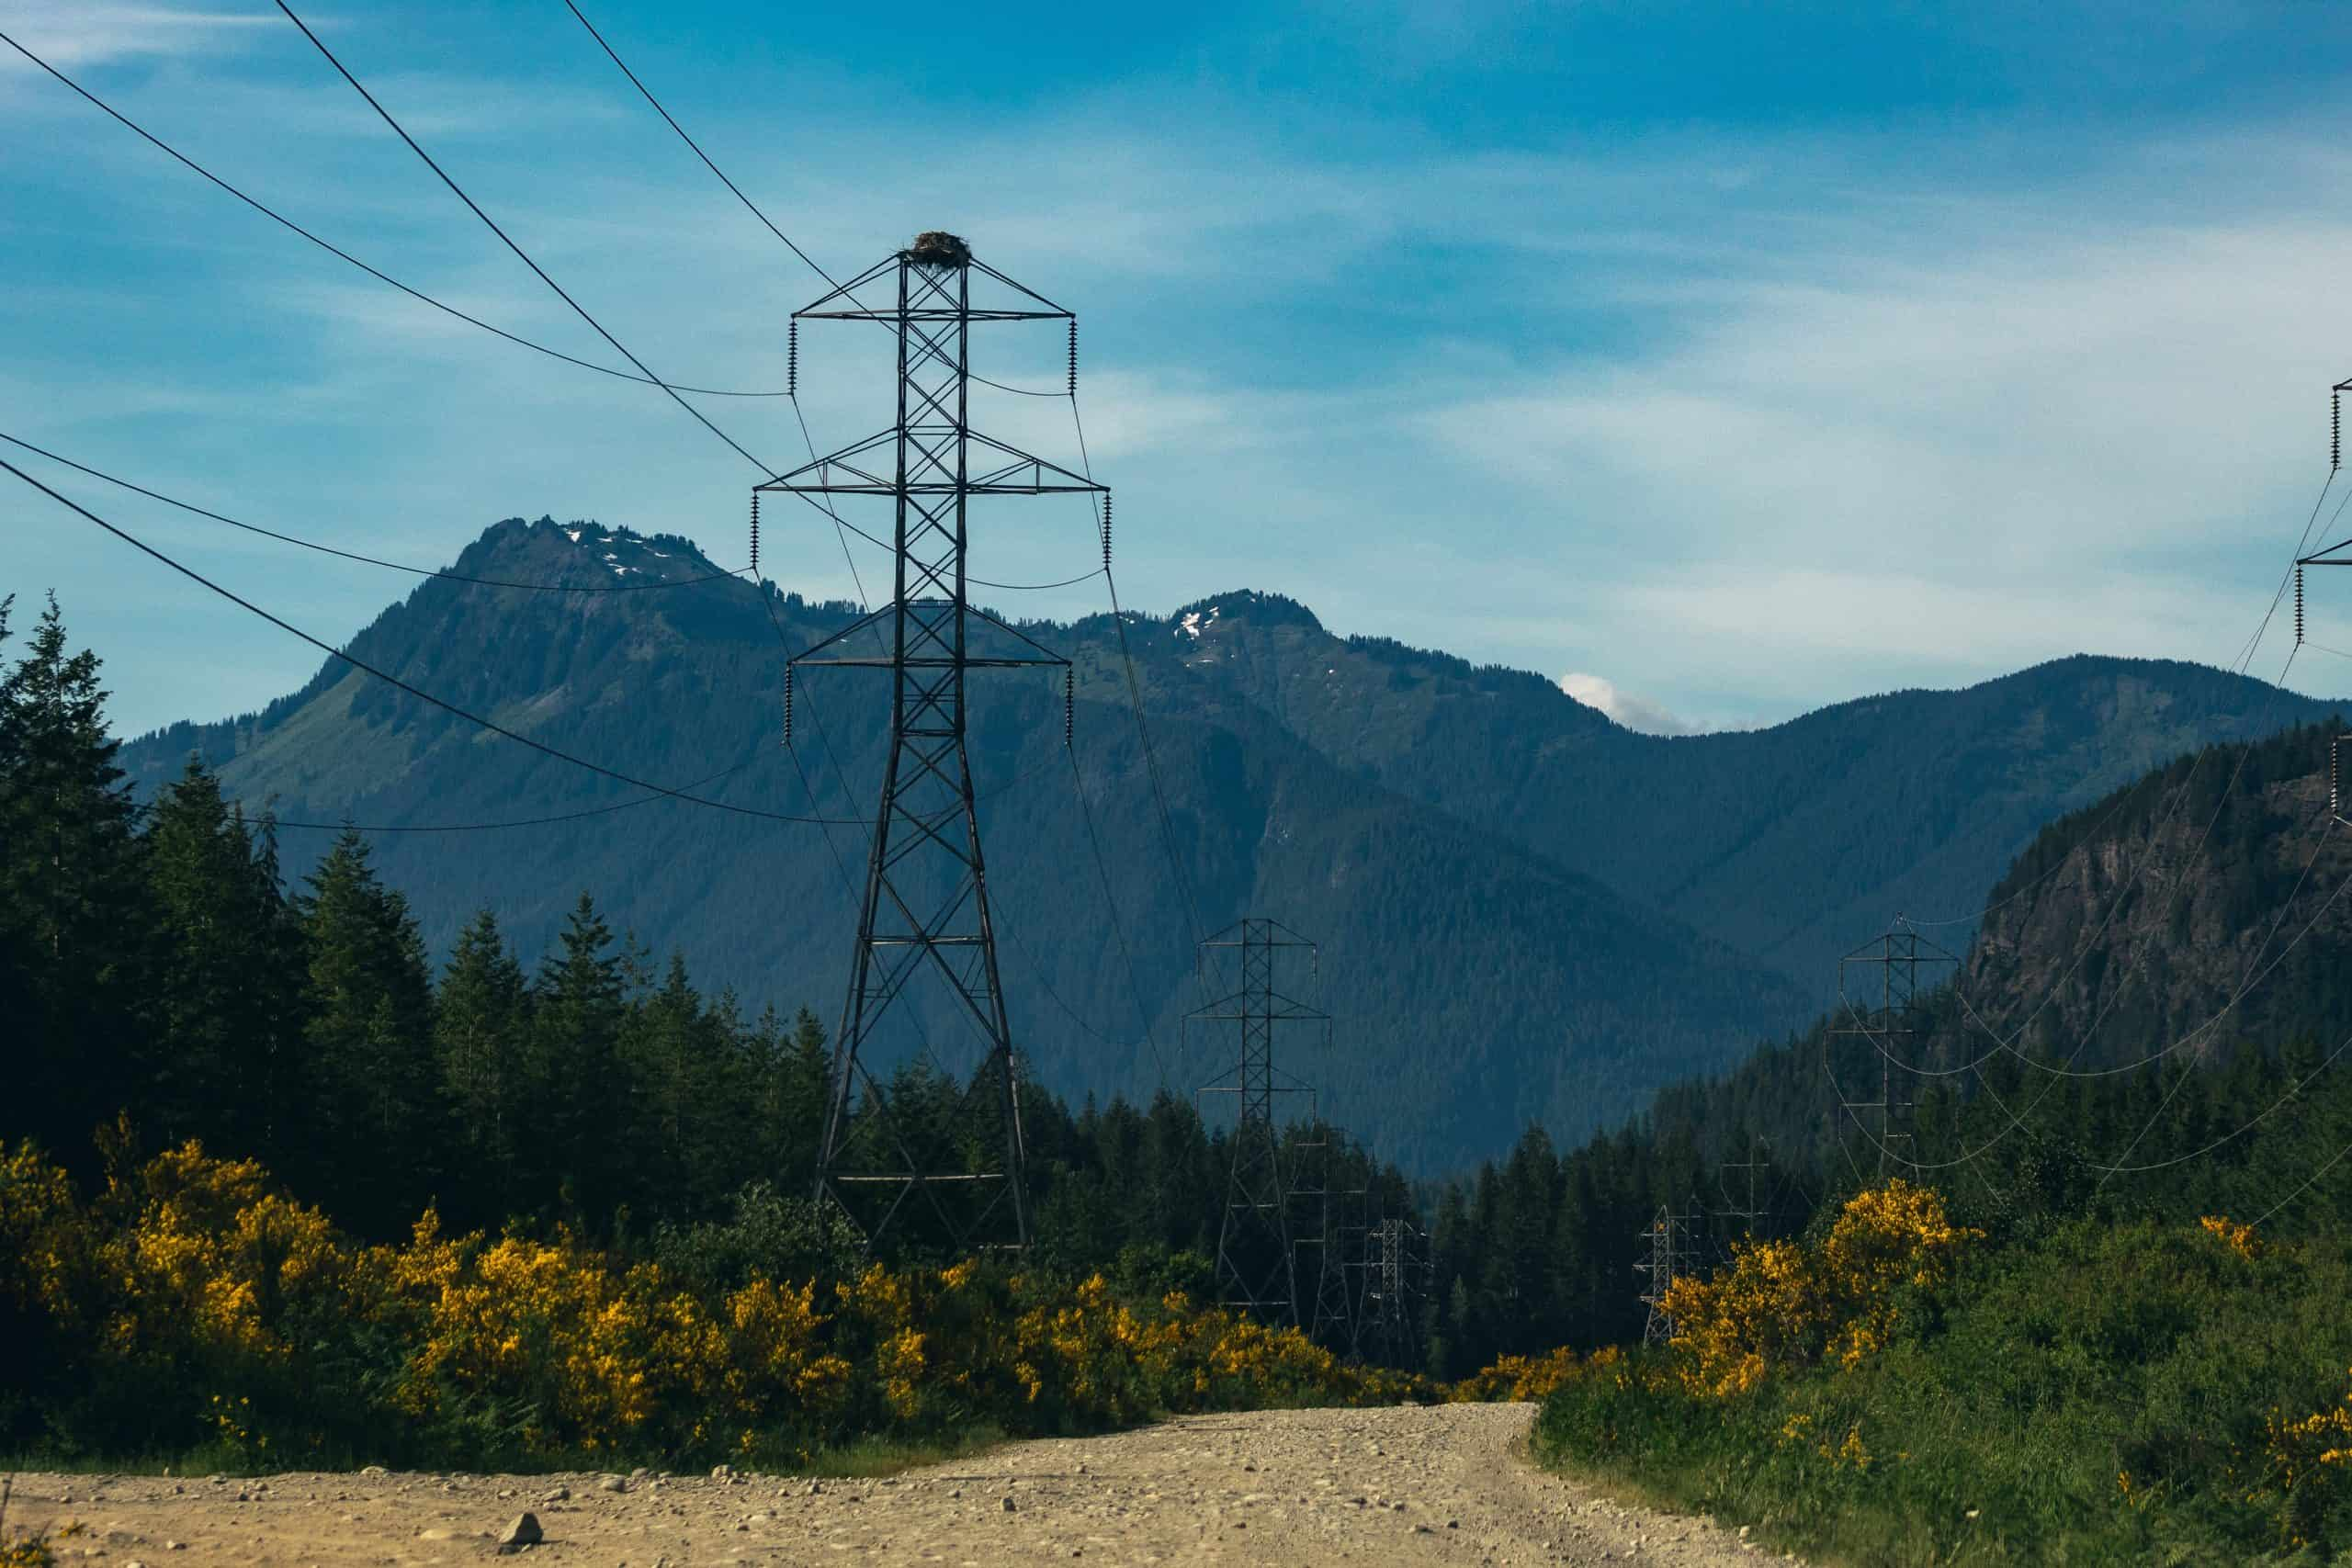 transmission lines in front of mountains